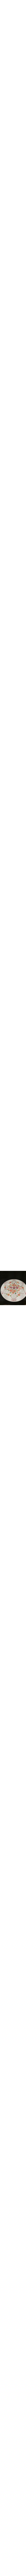 Circle Seder Plate Passover plate made of ceramic